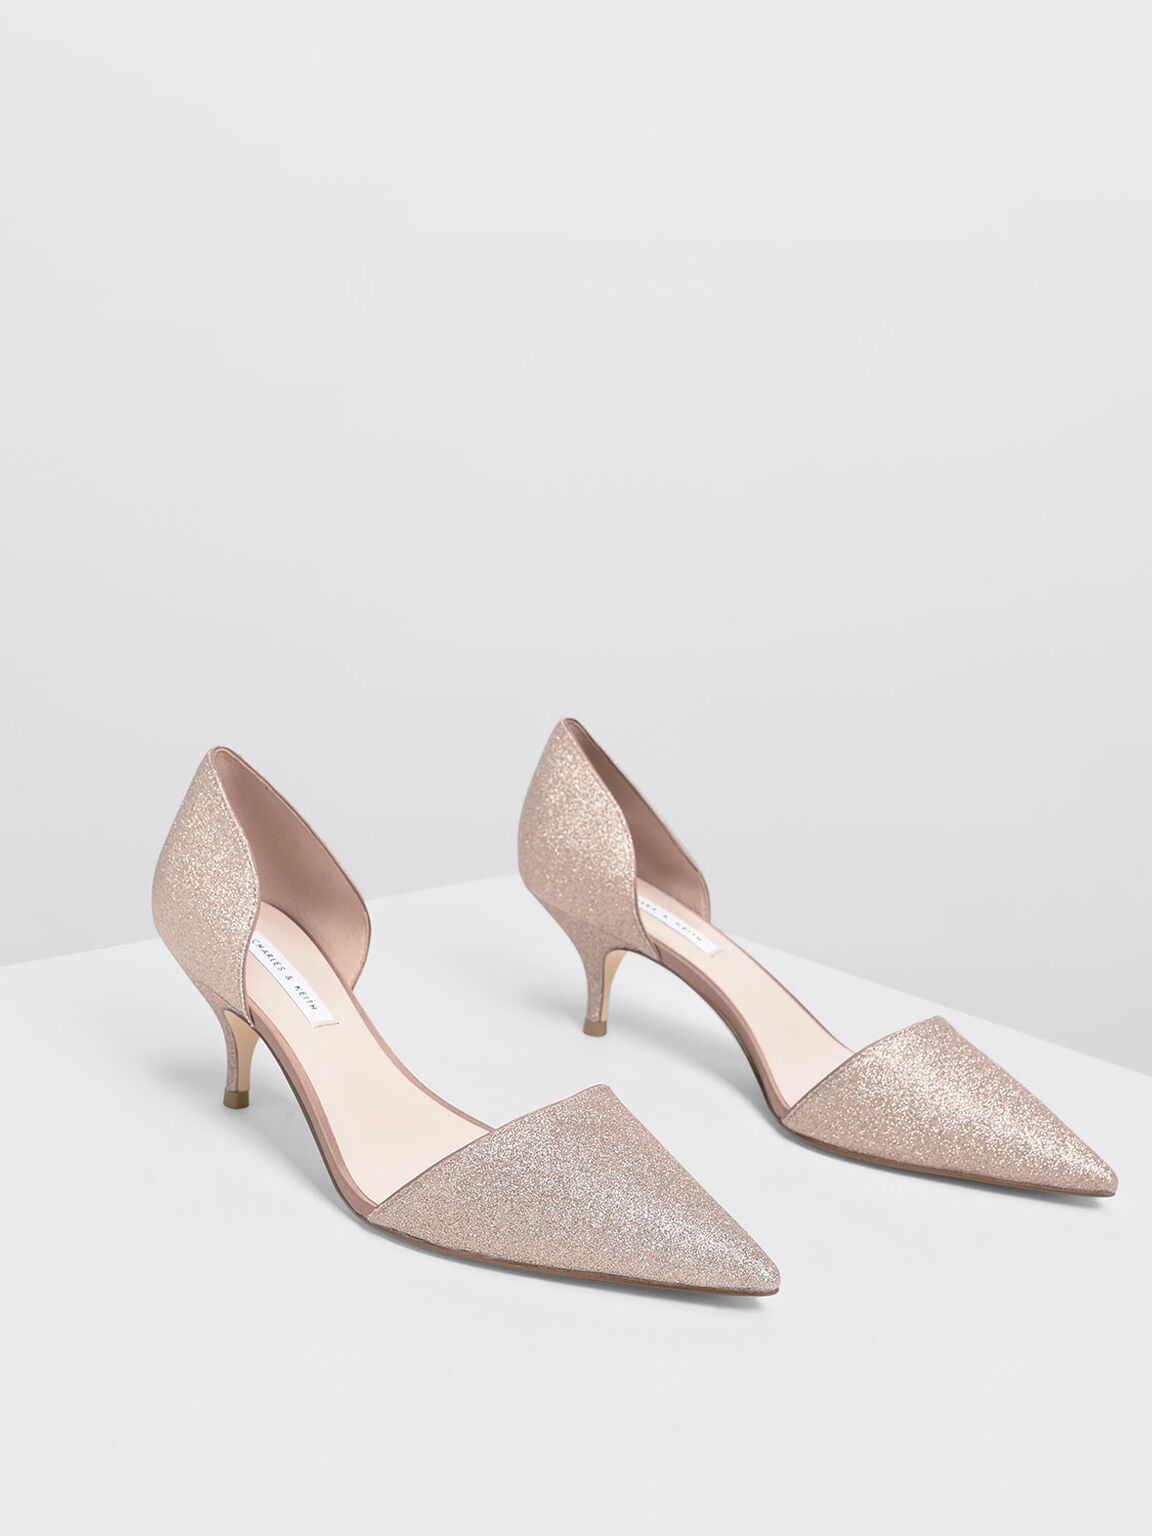 D'Orsay Glitter Fabric Kitten Heel Pumps, Rose Gold, hi-res